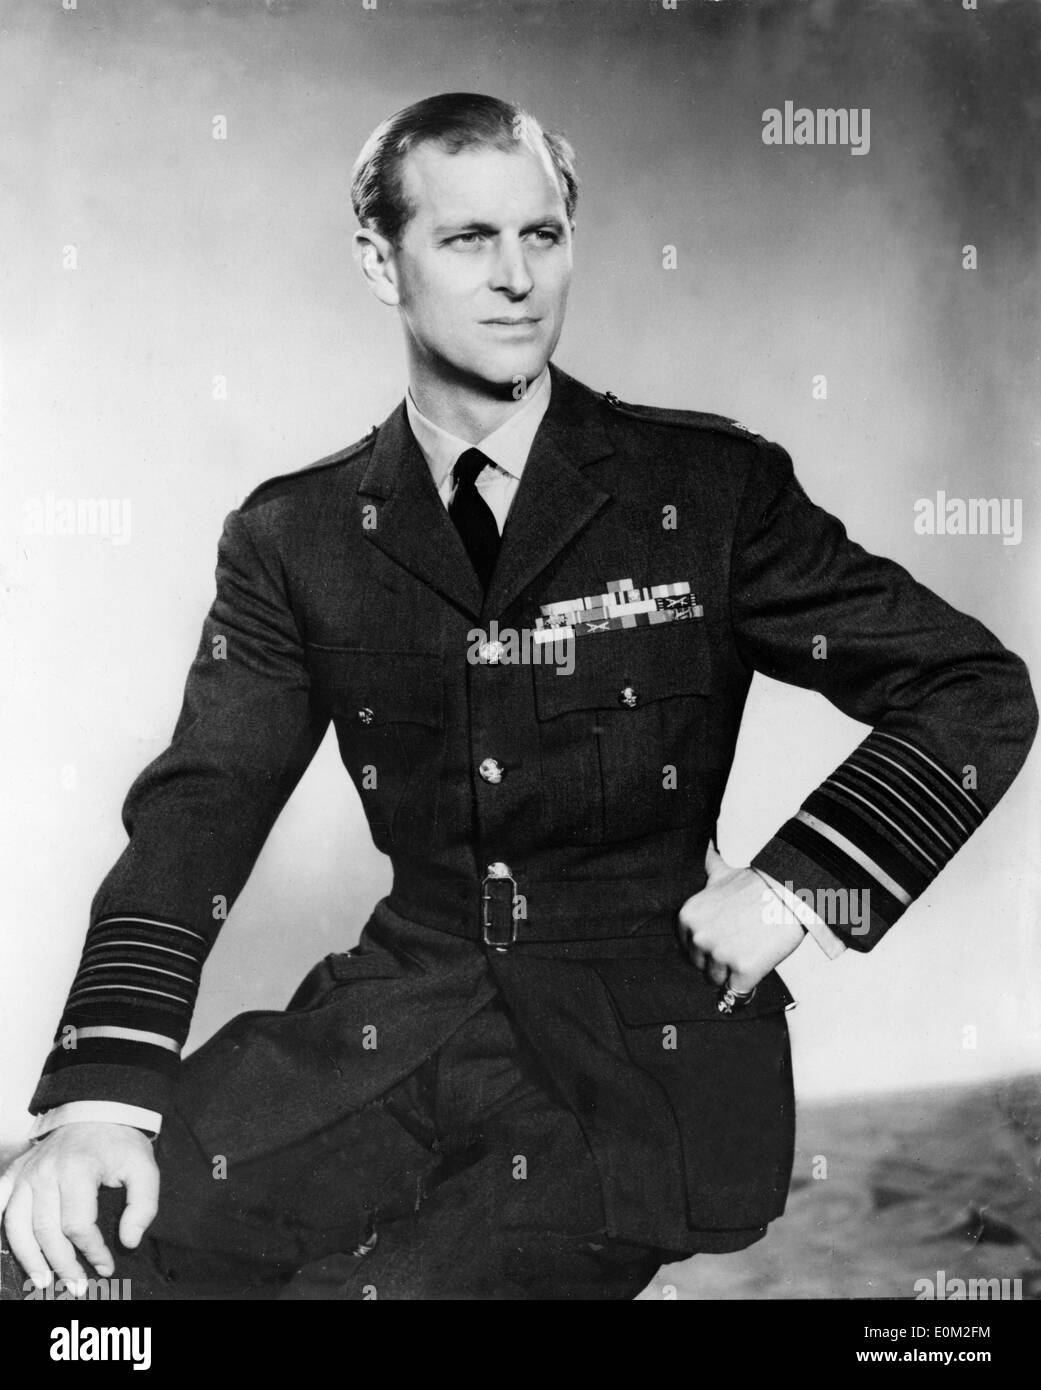 Portrait of Prince Philip in his Marshall uniform for the Royal Air Force - Stock Image